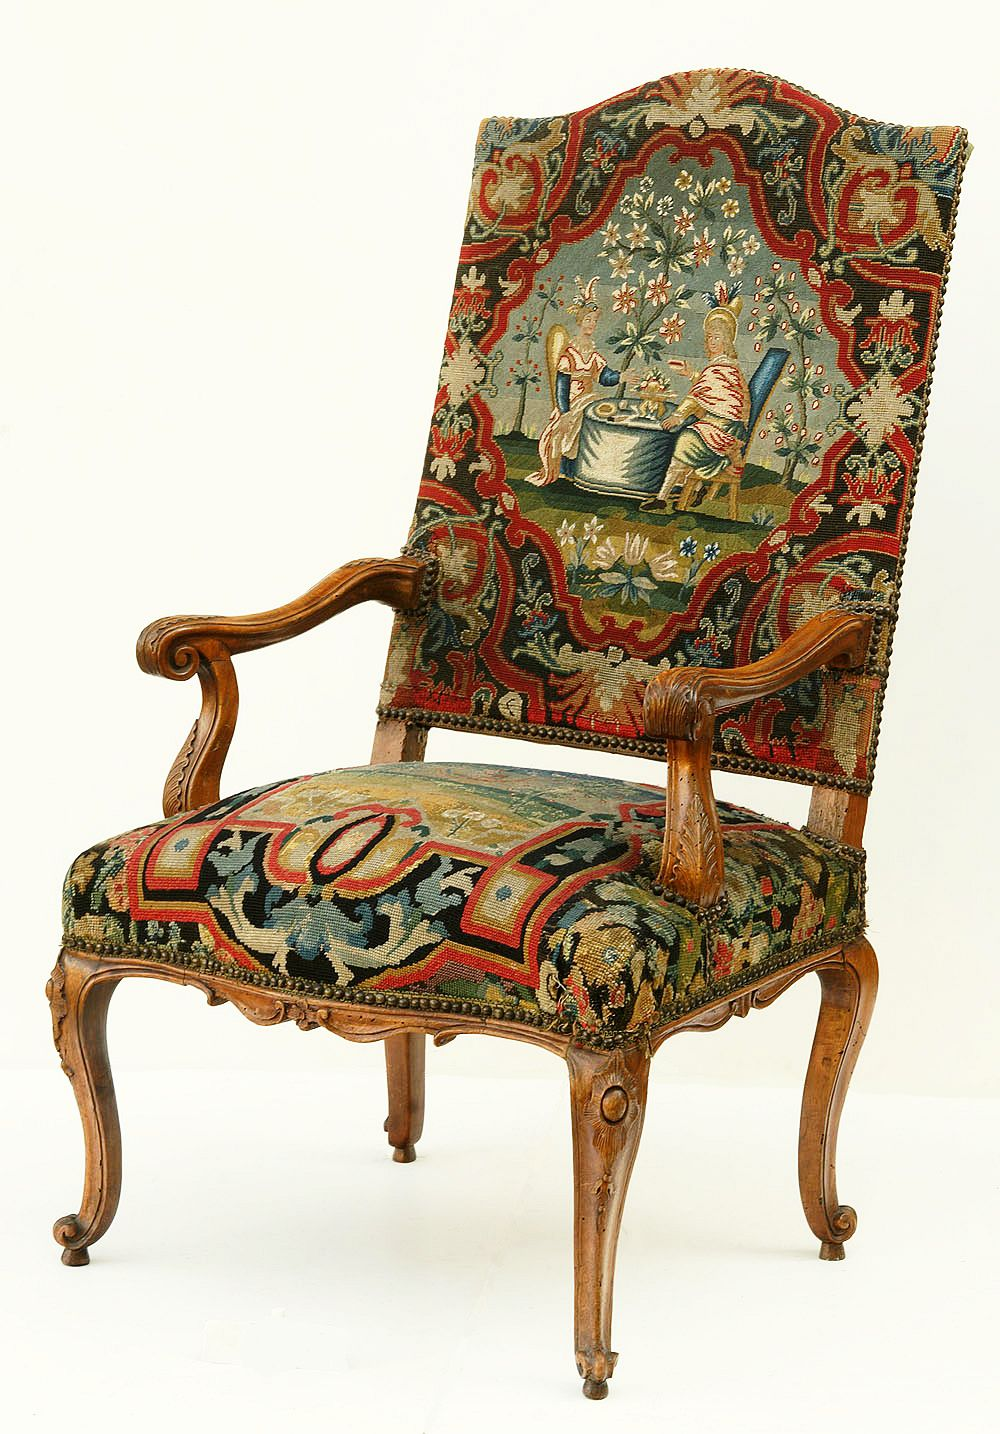 Tapestry Covered Chair By Anonymous, First Half Of The 18th Century, Muzeum  Narodowe W Warszawie (MNW)